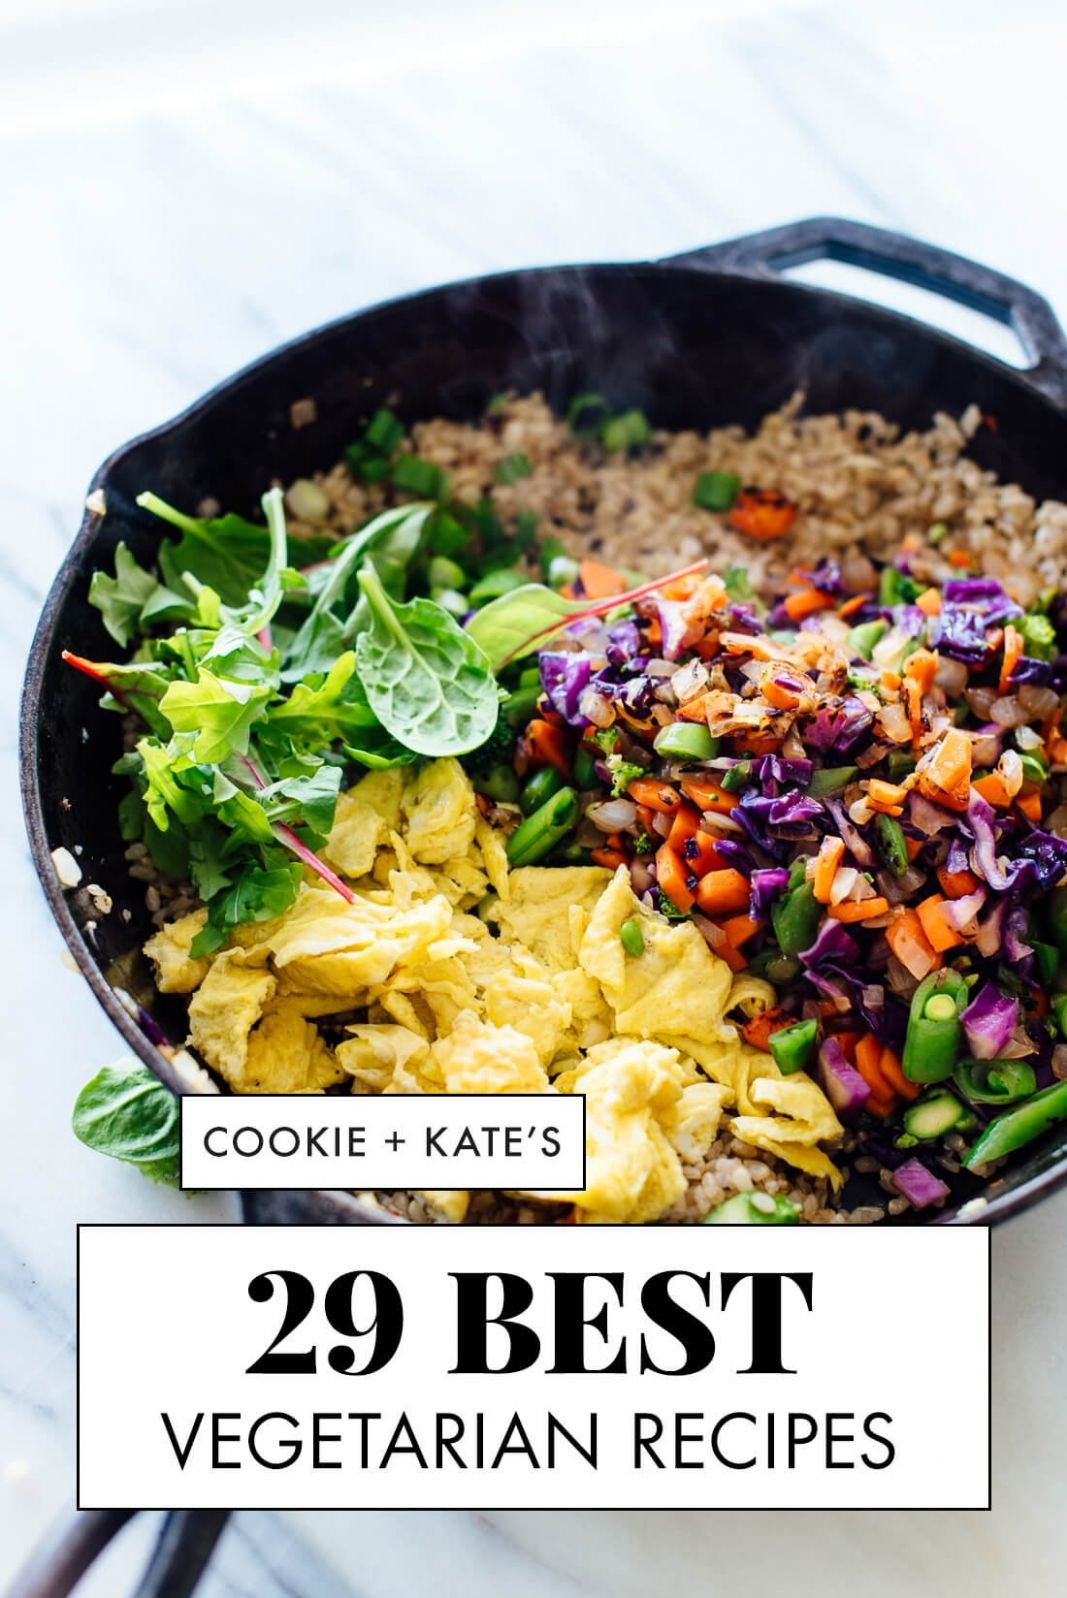 11 Best Vegetarian Recipes - Cookie and Kate - Vegetable Recipes Main Dish